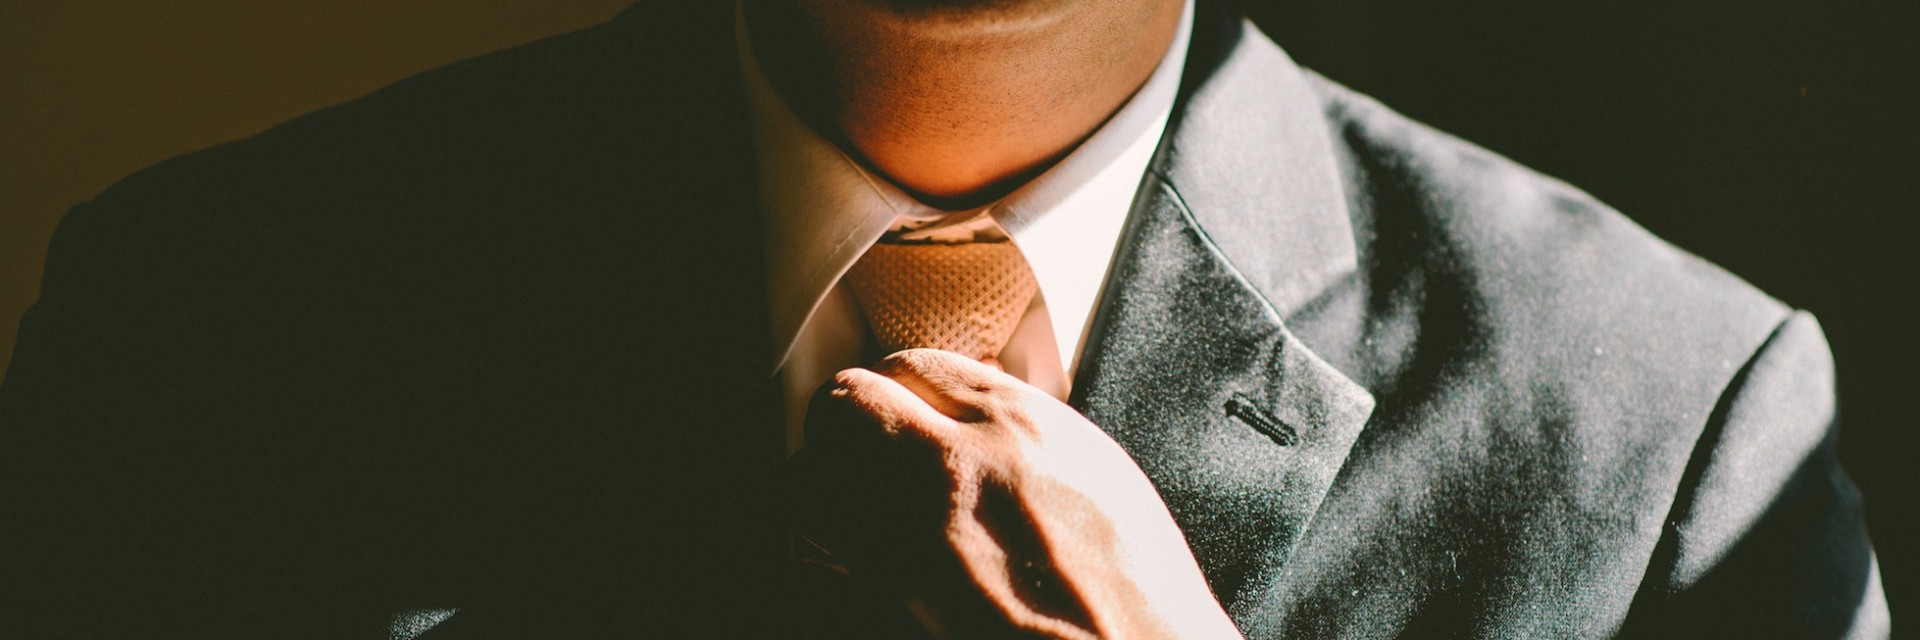 A person in a suit fixing his tie before going in to interview for a job in finance or consulting